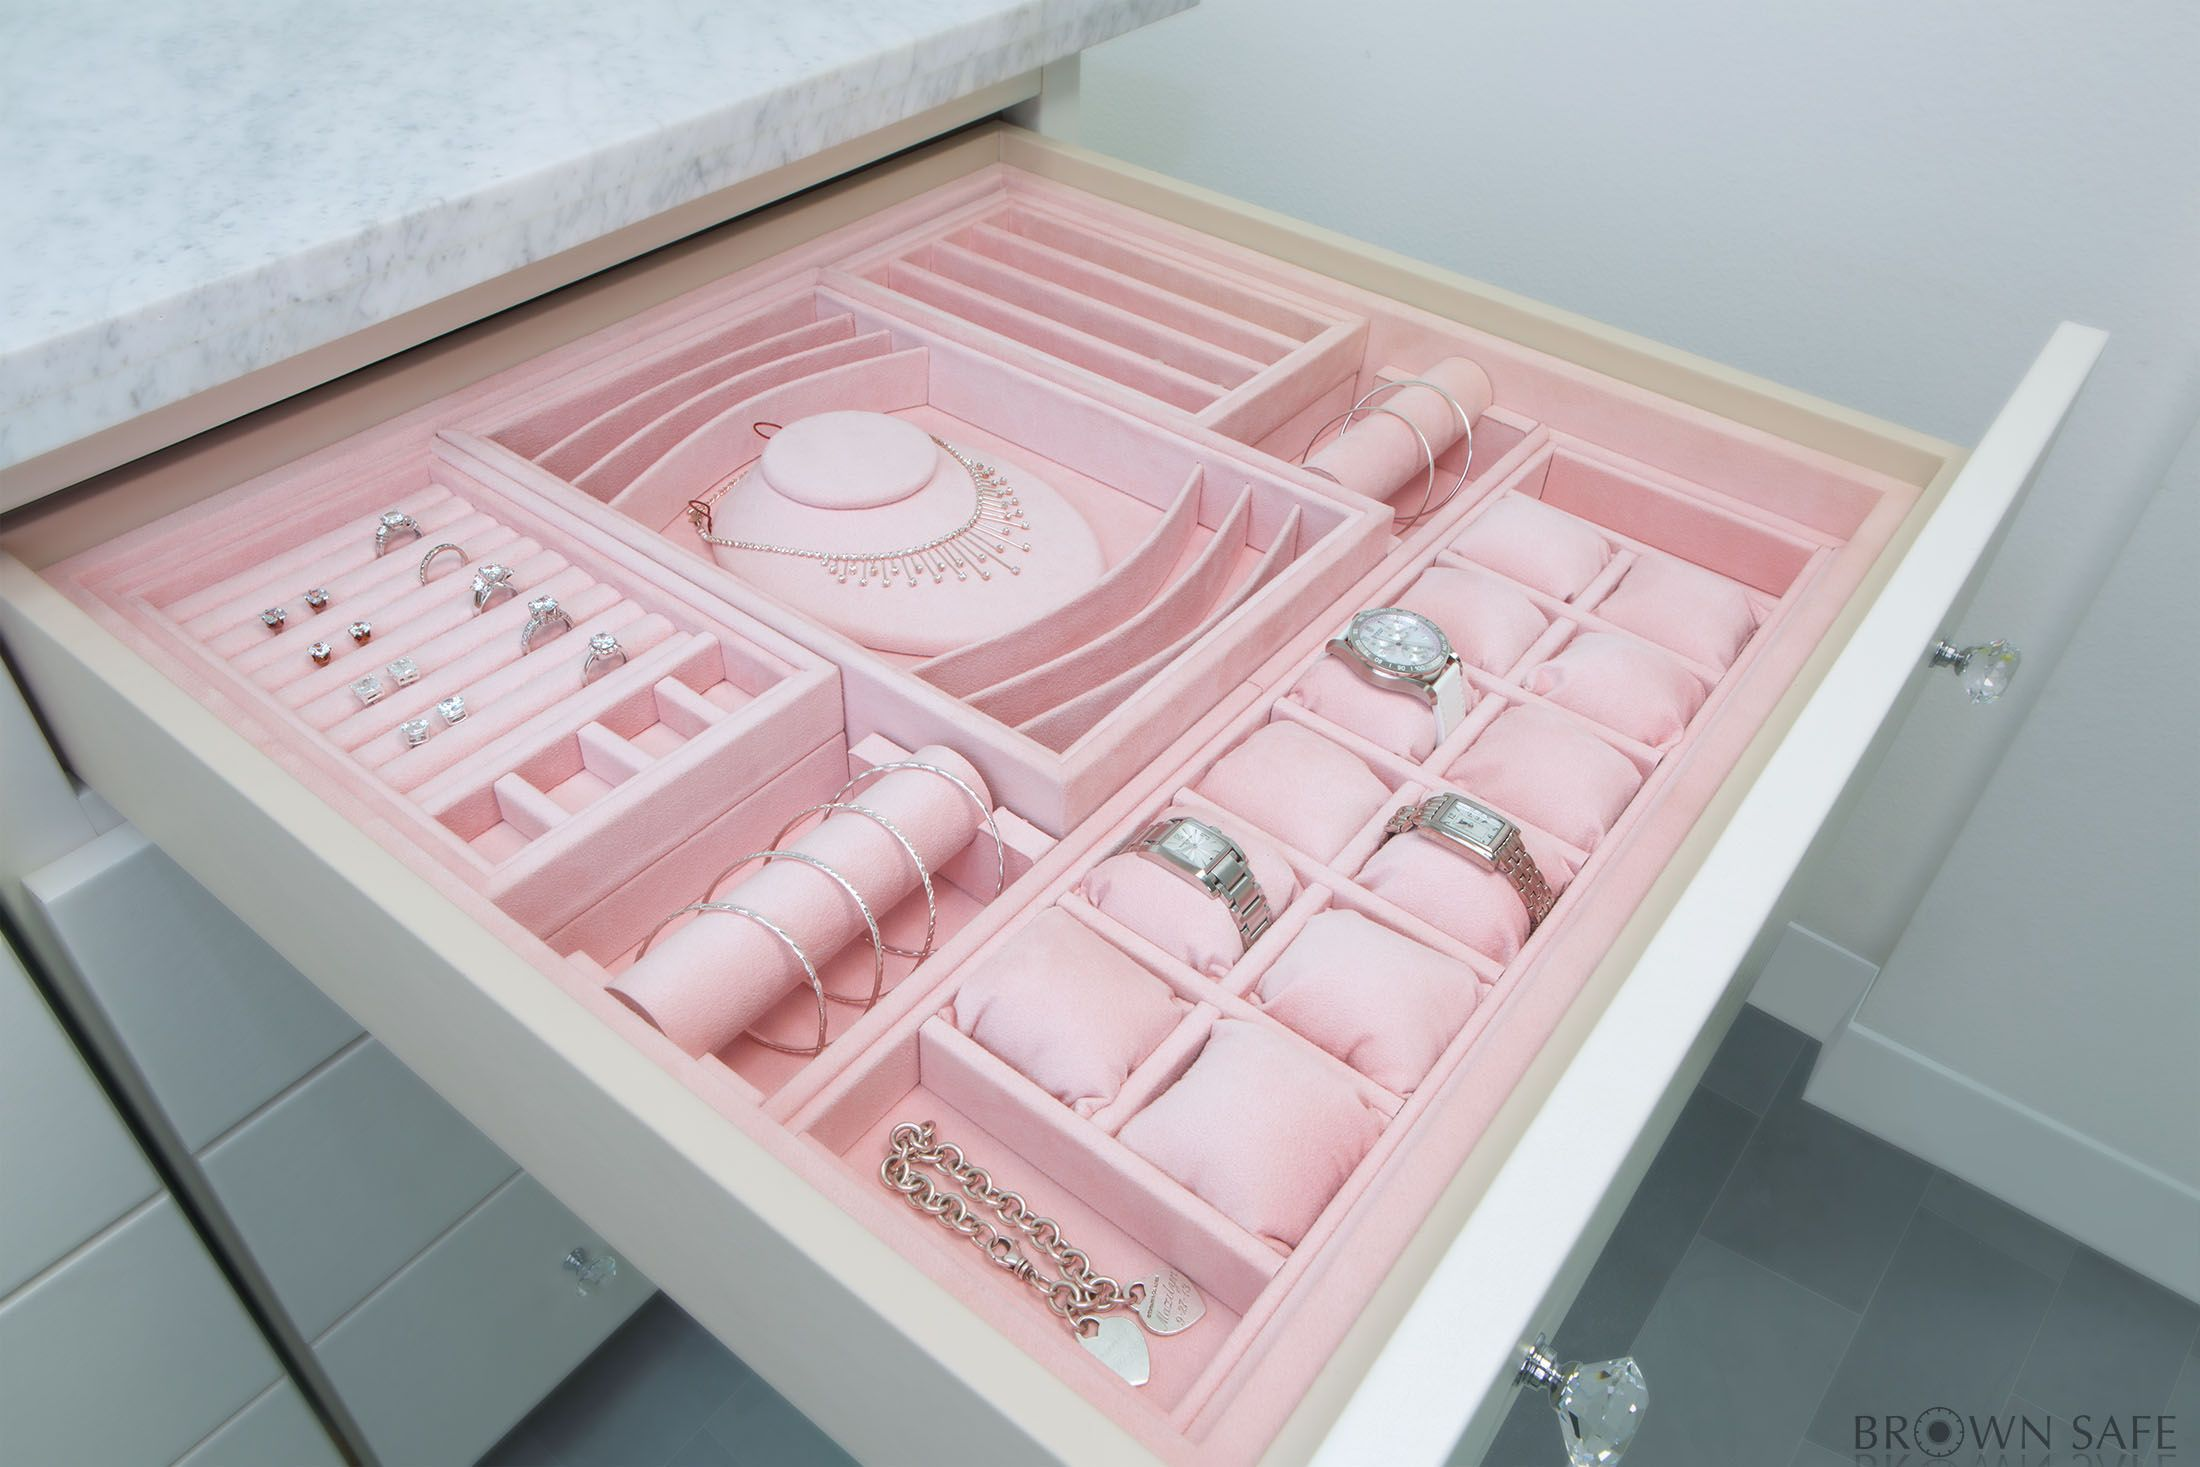 Jewelry inserts for drawers keep your jewelry pristine organized